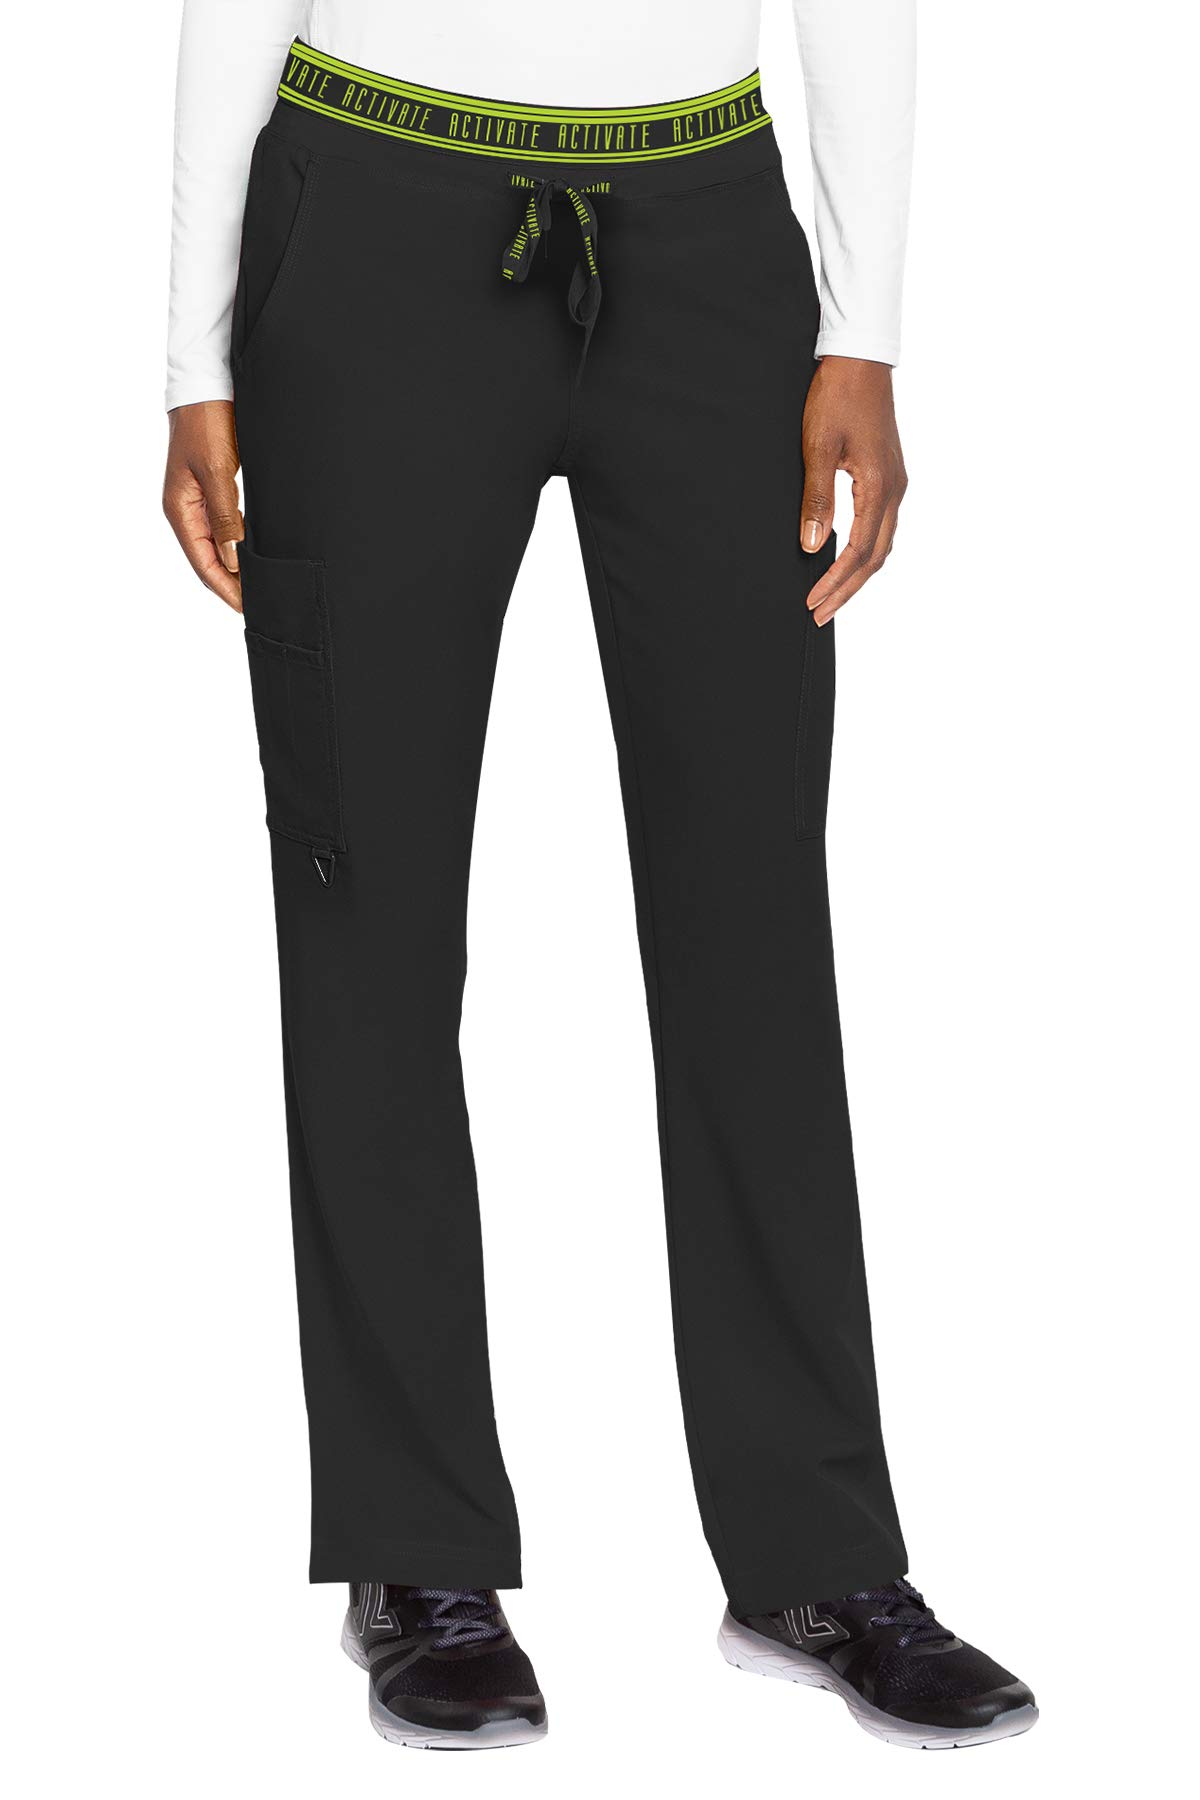 Med Couture Women's Activate Flow Yoga Two Pocket Cargo Pant